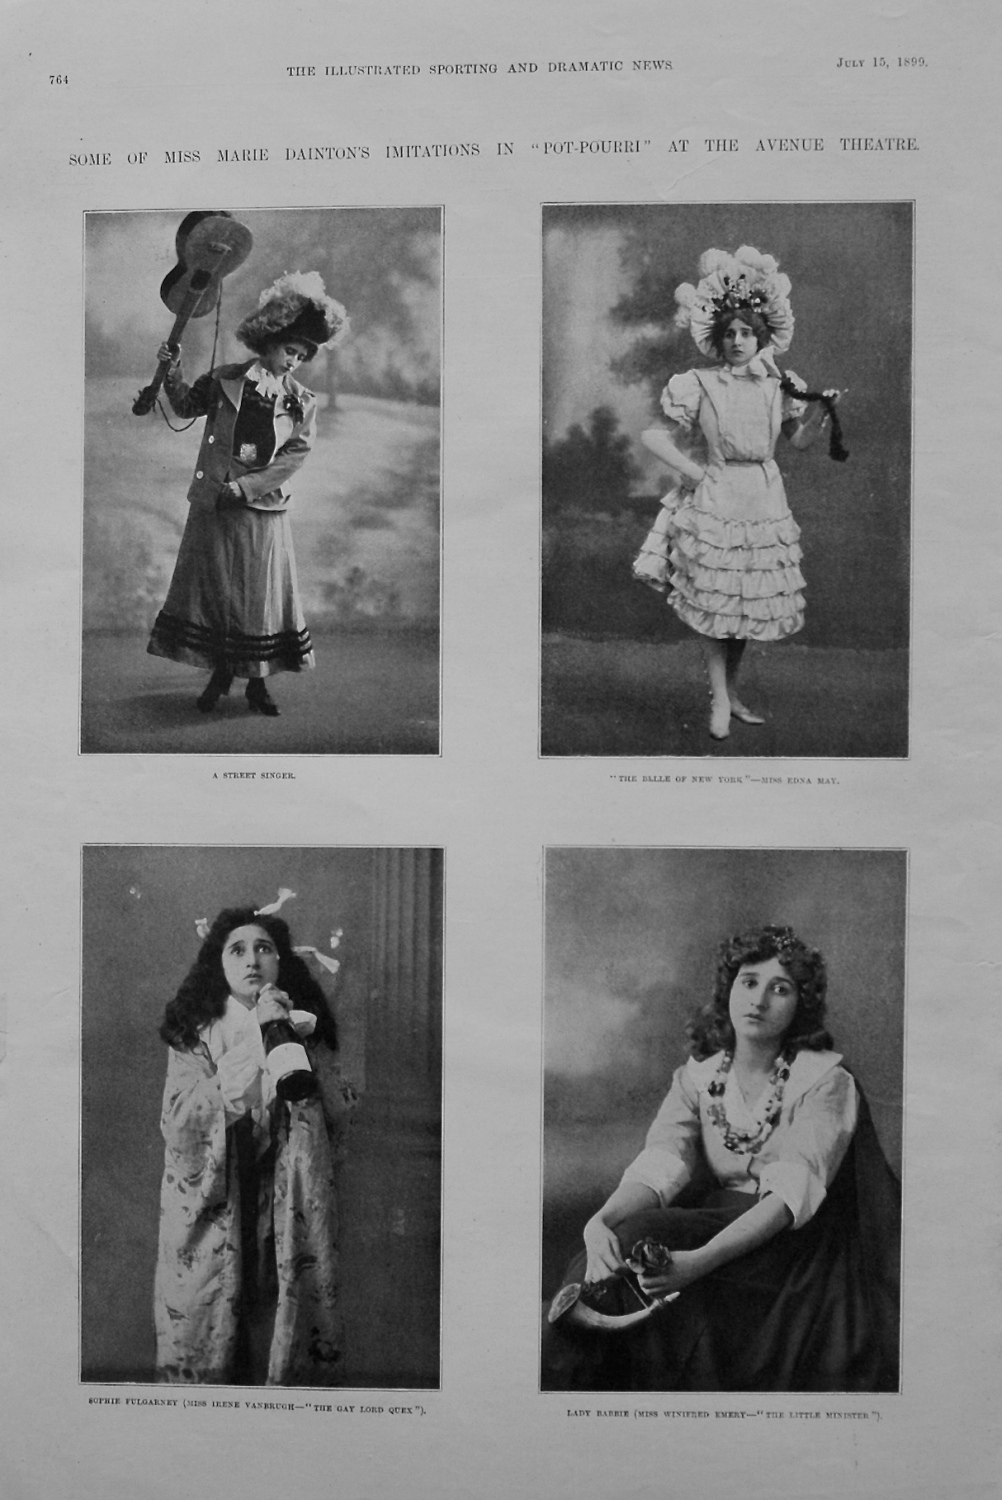 Some of Miss Marie Dainton's Imitations in